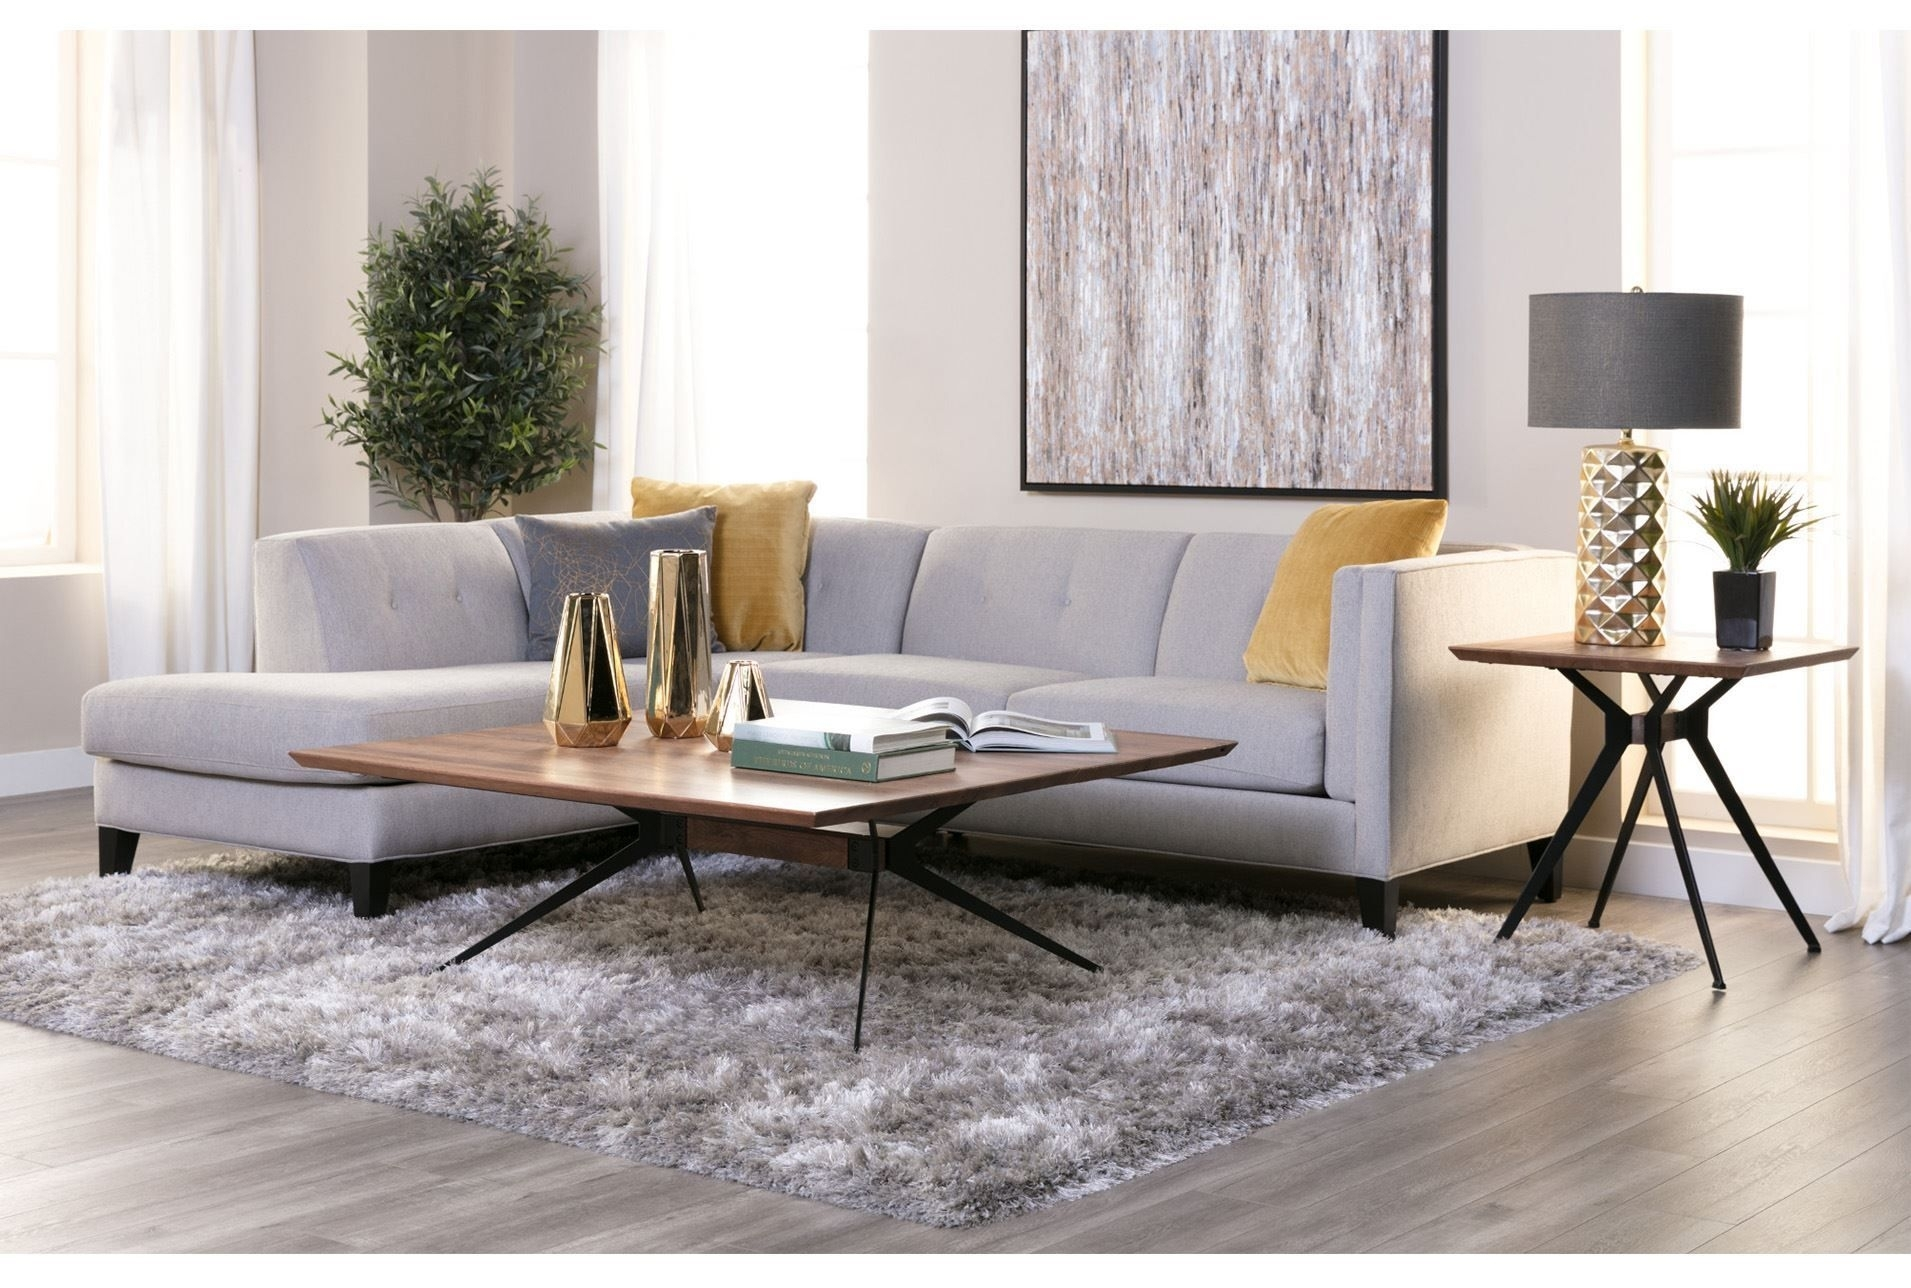 Avery 2 Piece Sectional W/laf Armless Chaise | Home Decor/interior regarding Avery 2 Piece Sectionals With Raf Armless Chaise (Image 5 of 30)